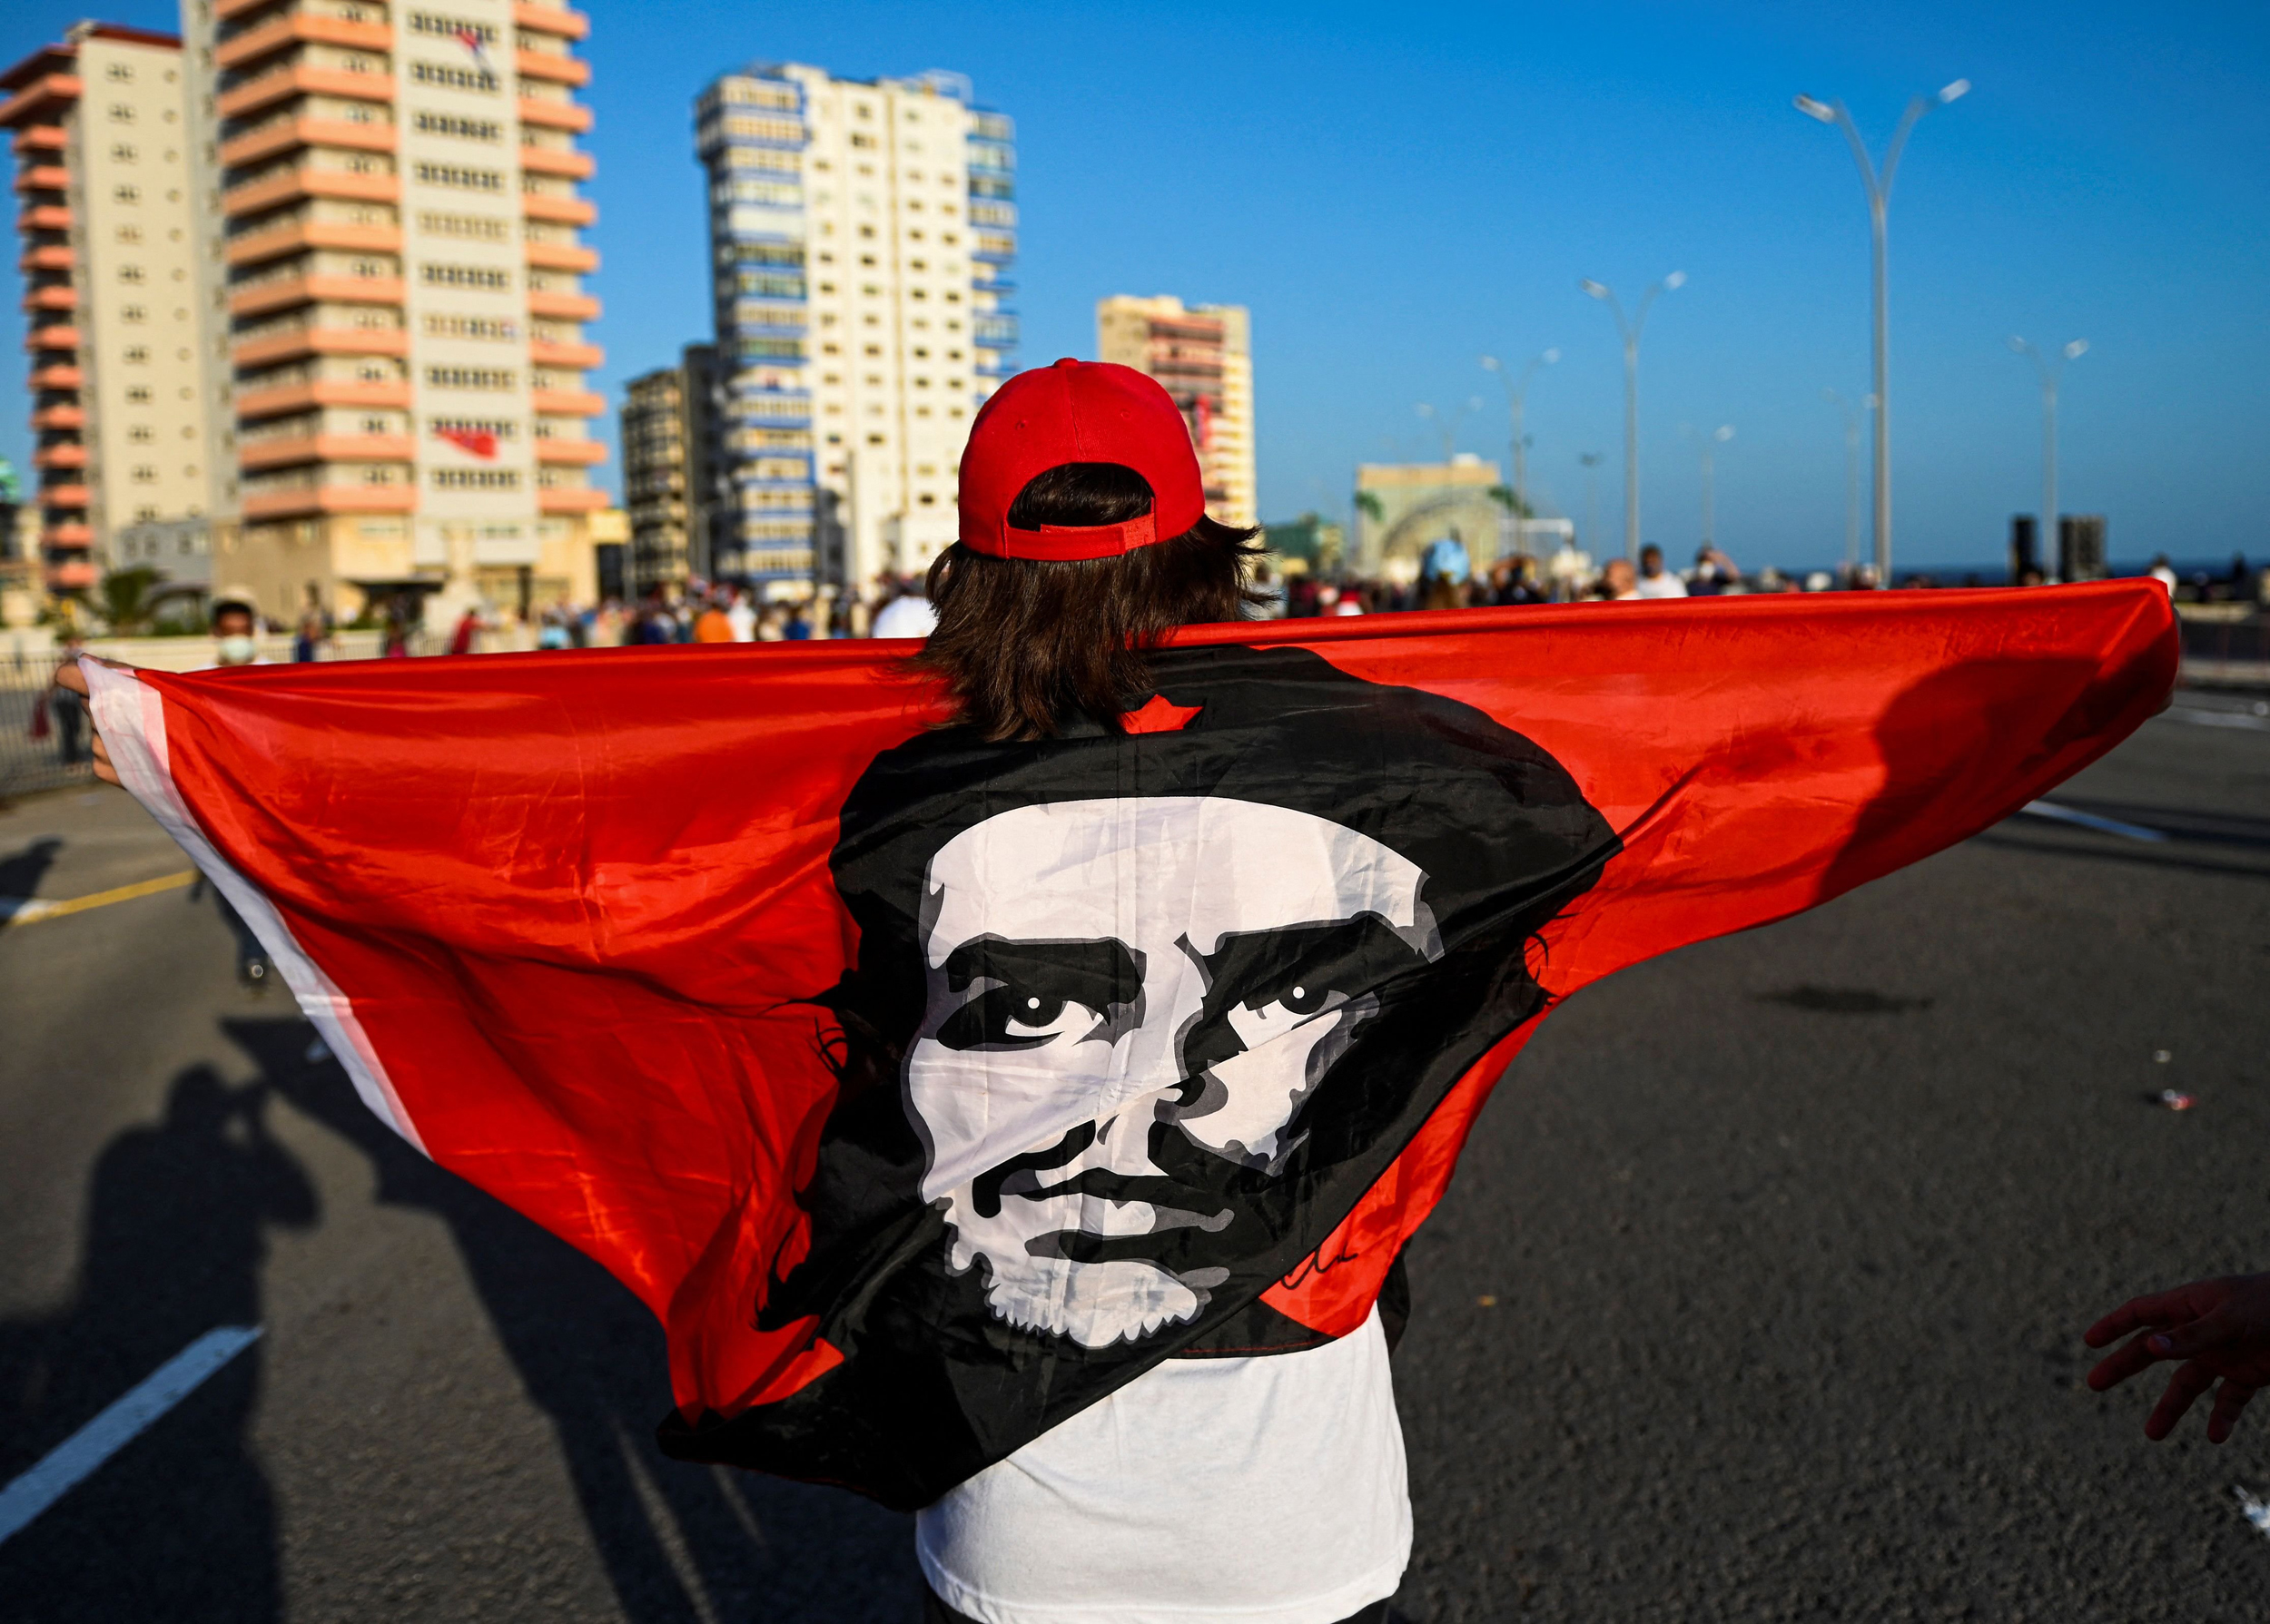 Historic protests undoubtedly left a mark on Cuba. What experts say may happen next.